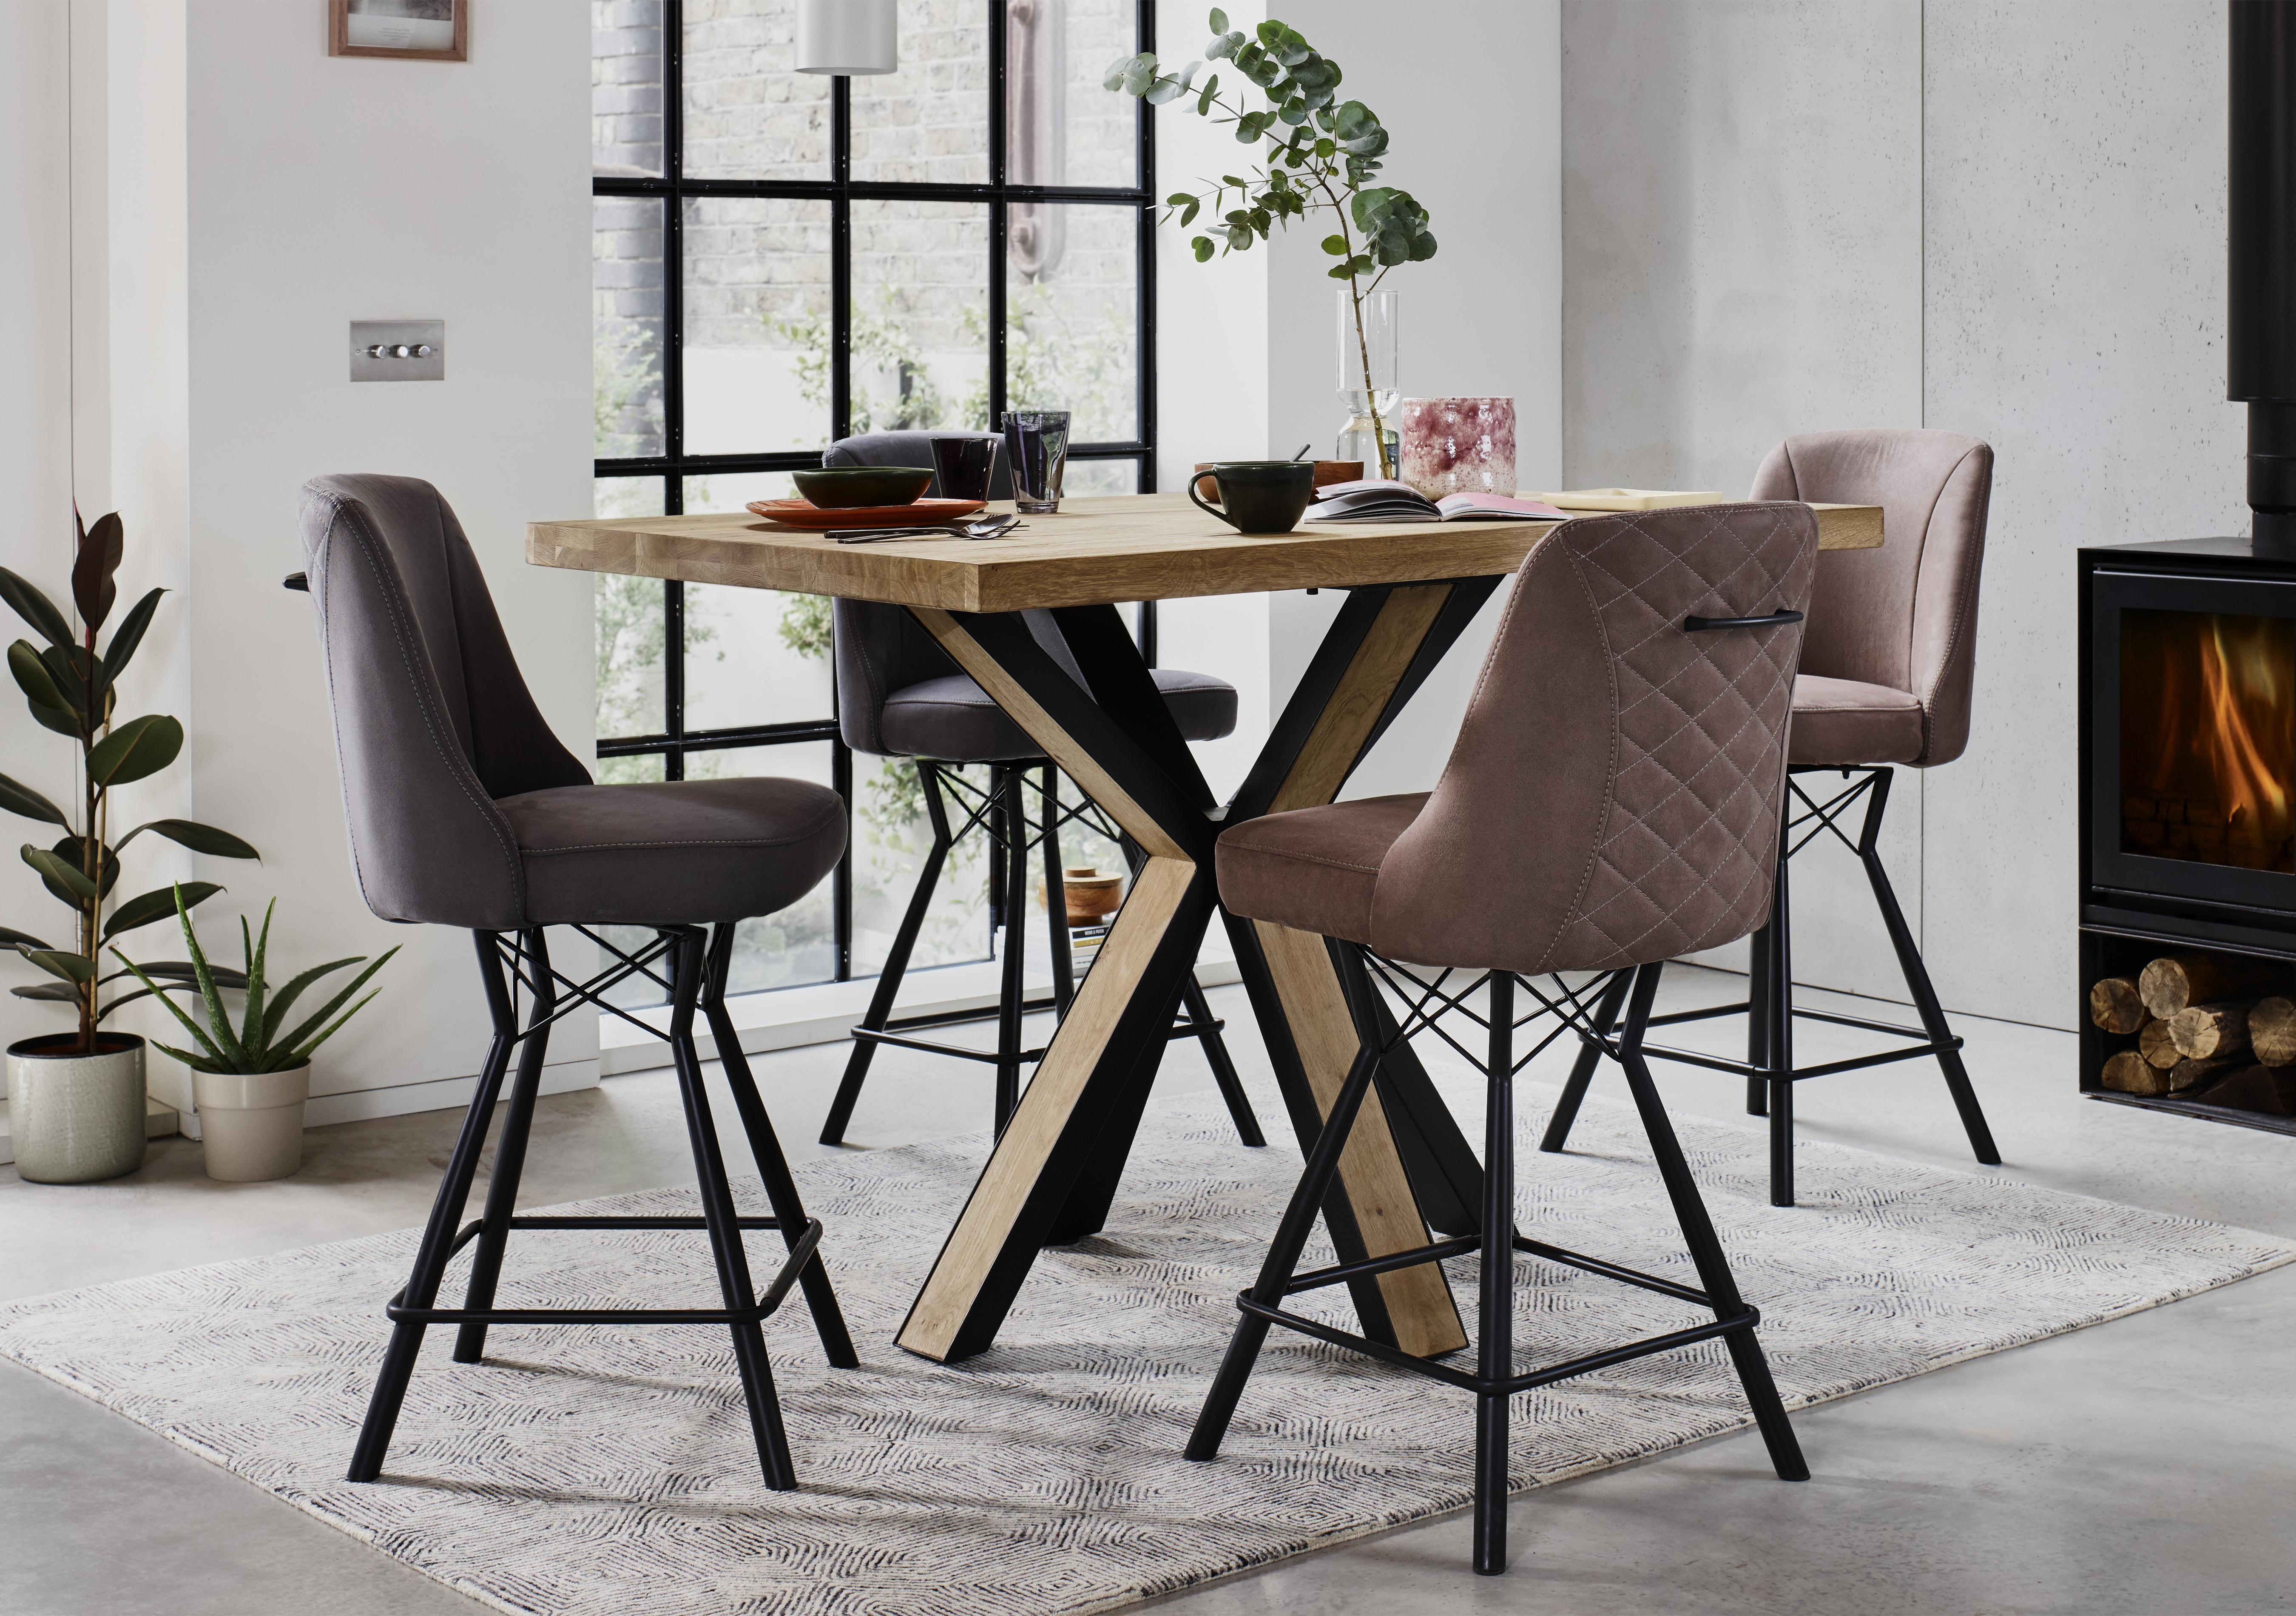 Wooden bar table with upholstered chairs